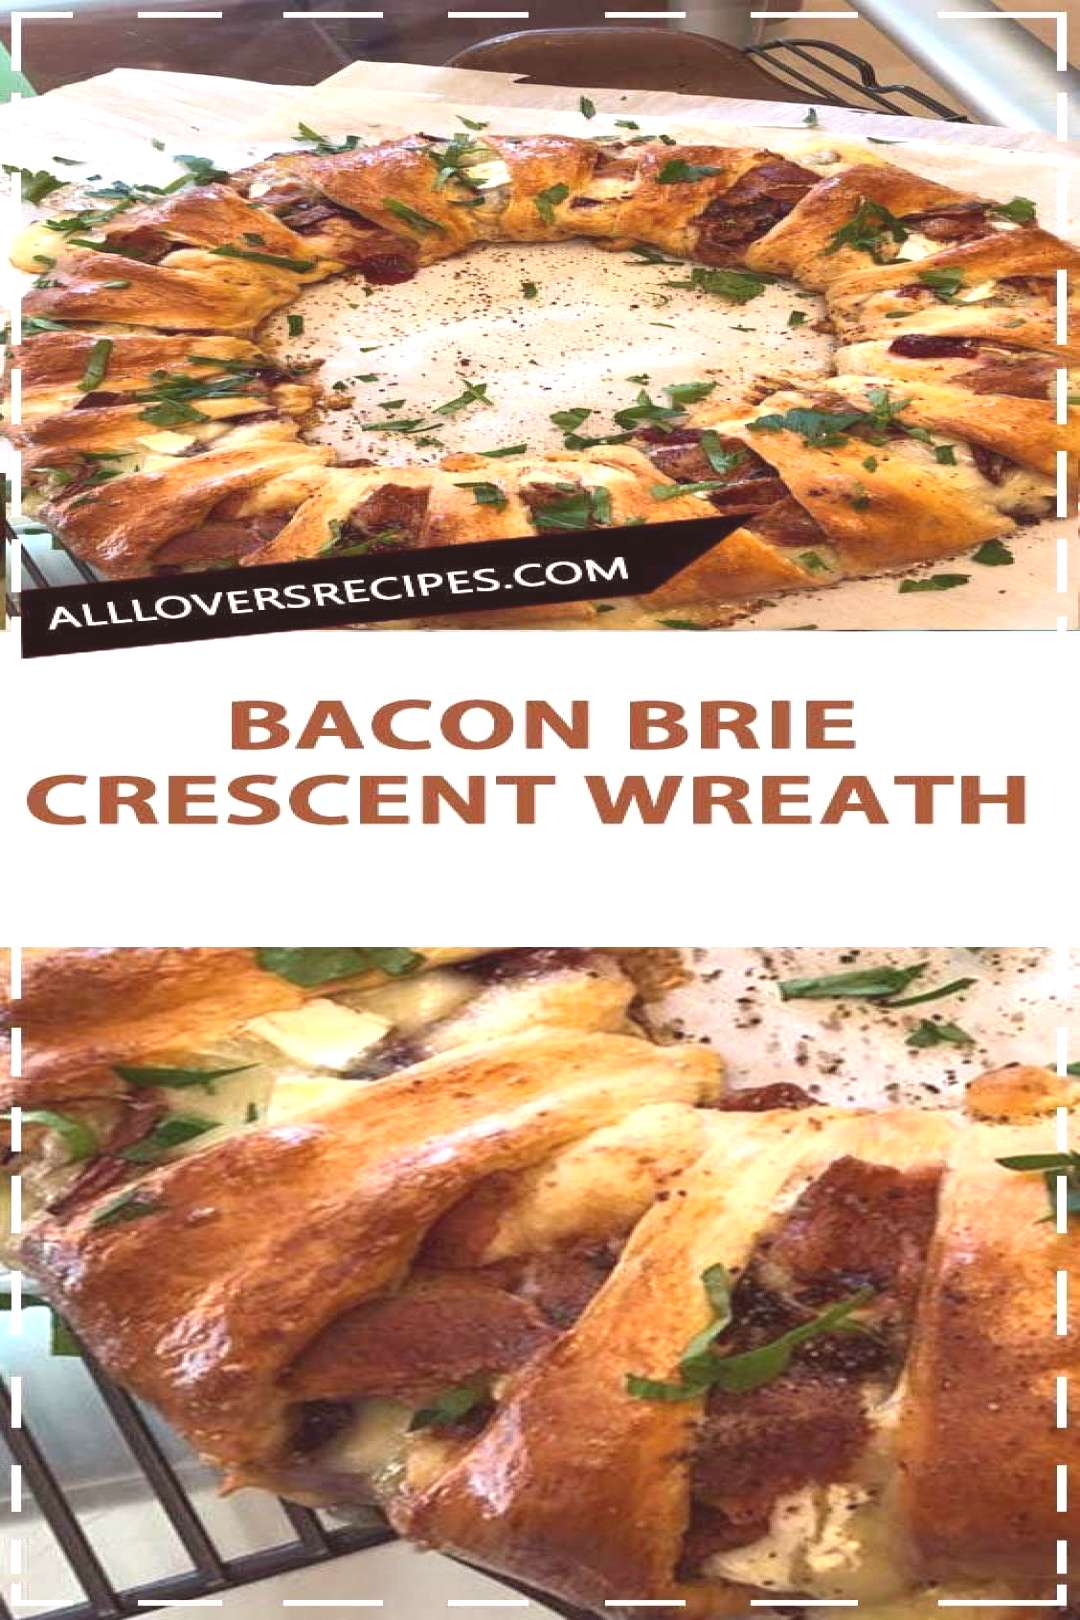 This bacon brie crescent wreath will be the star of your holiday party.